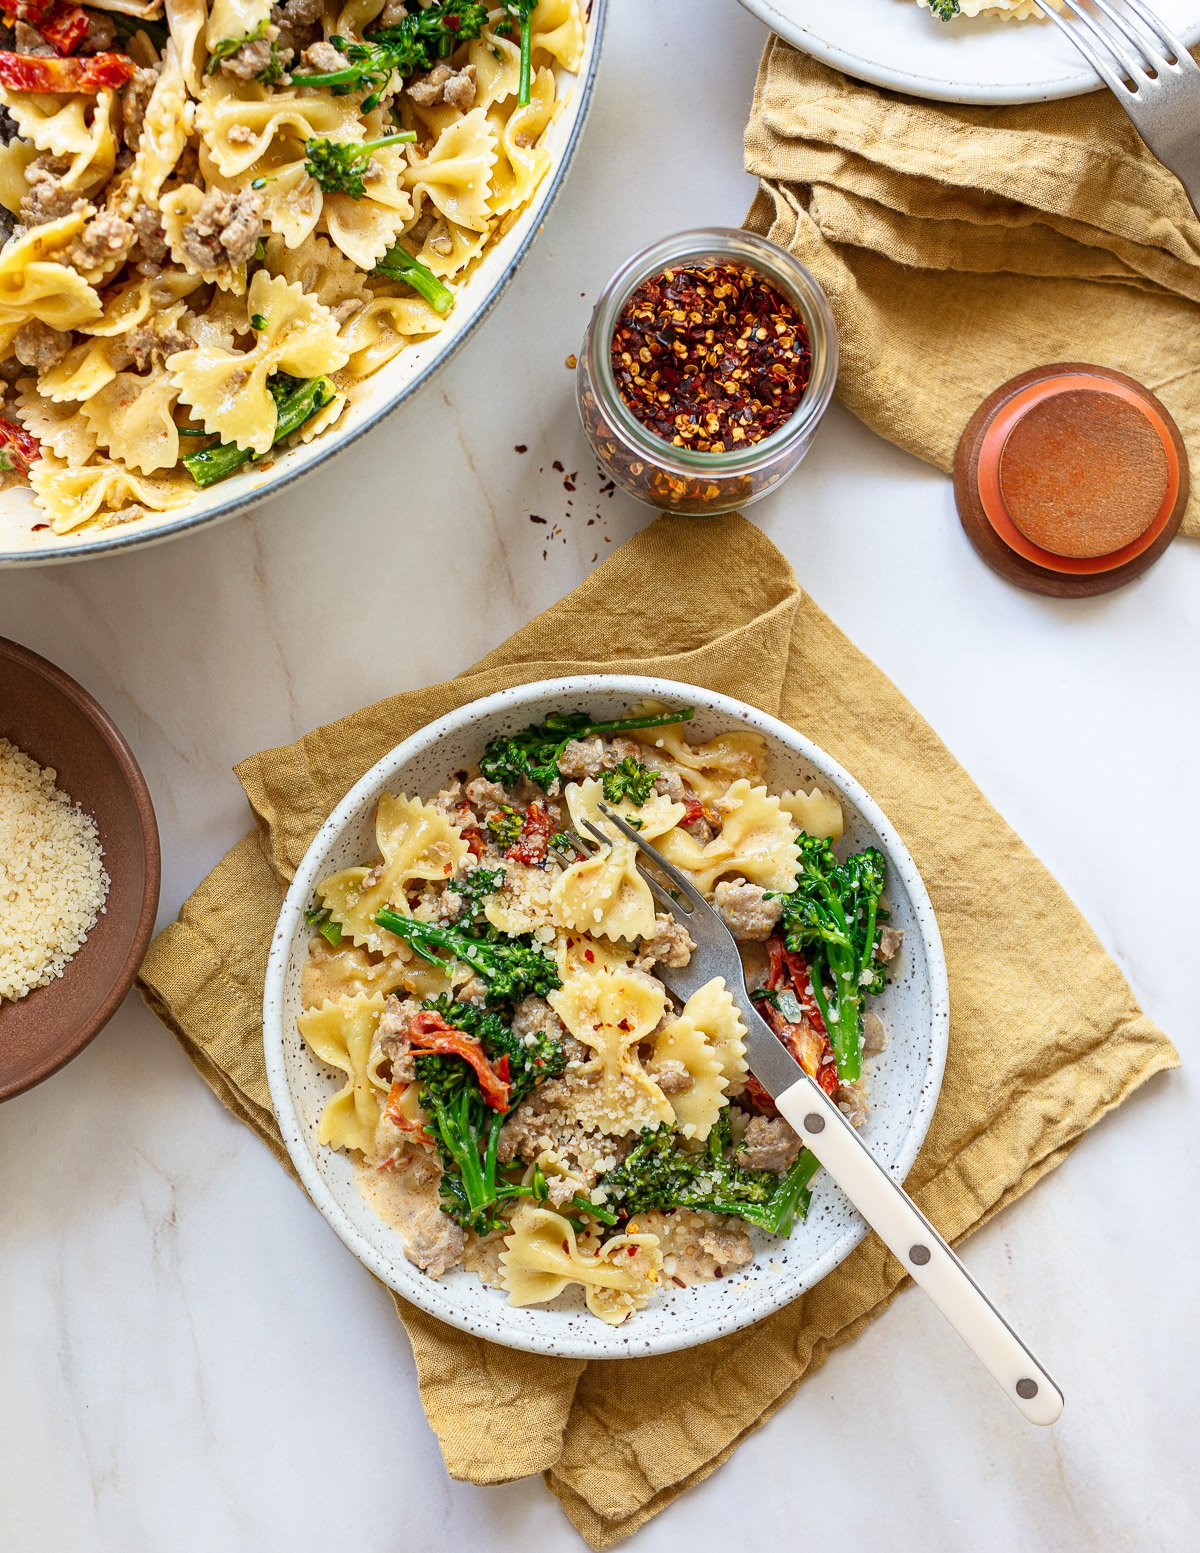 A photo of a bowl  and a fork serving farfalle pasta with a sausage and broccoli sauce, topped with grated cheese.